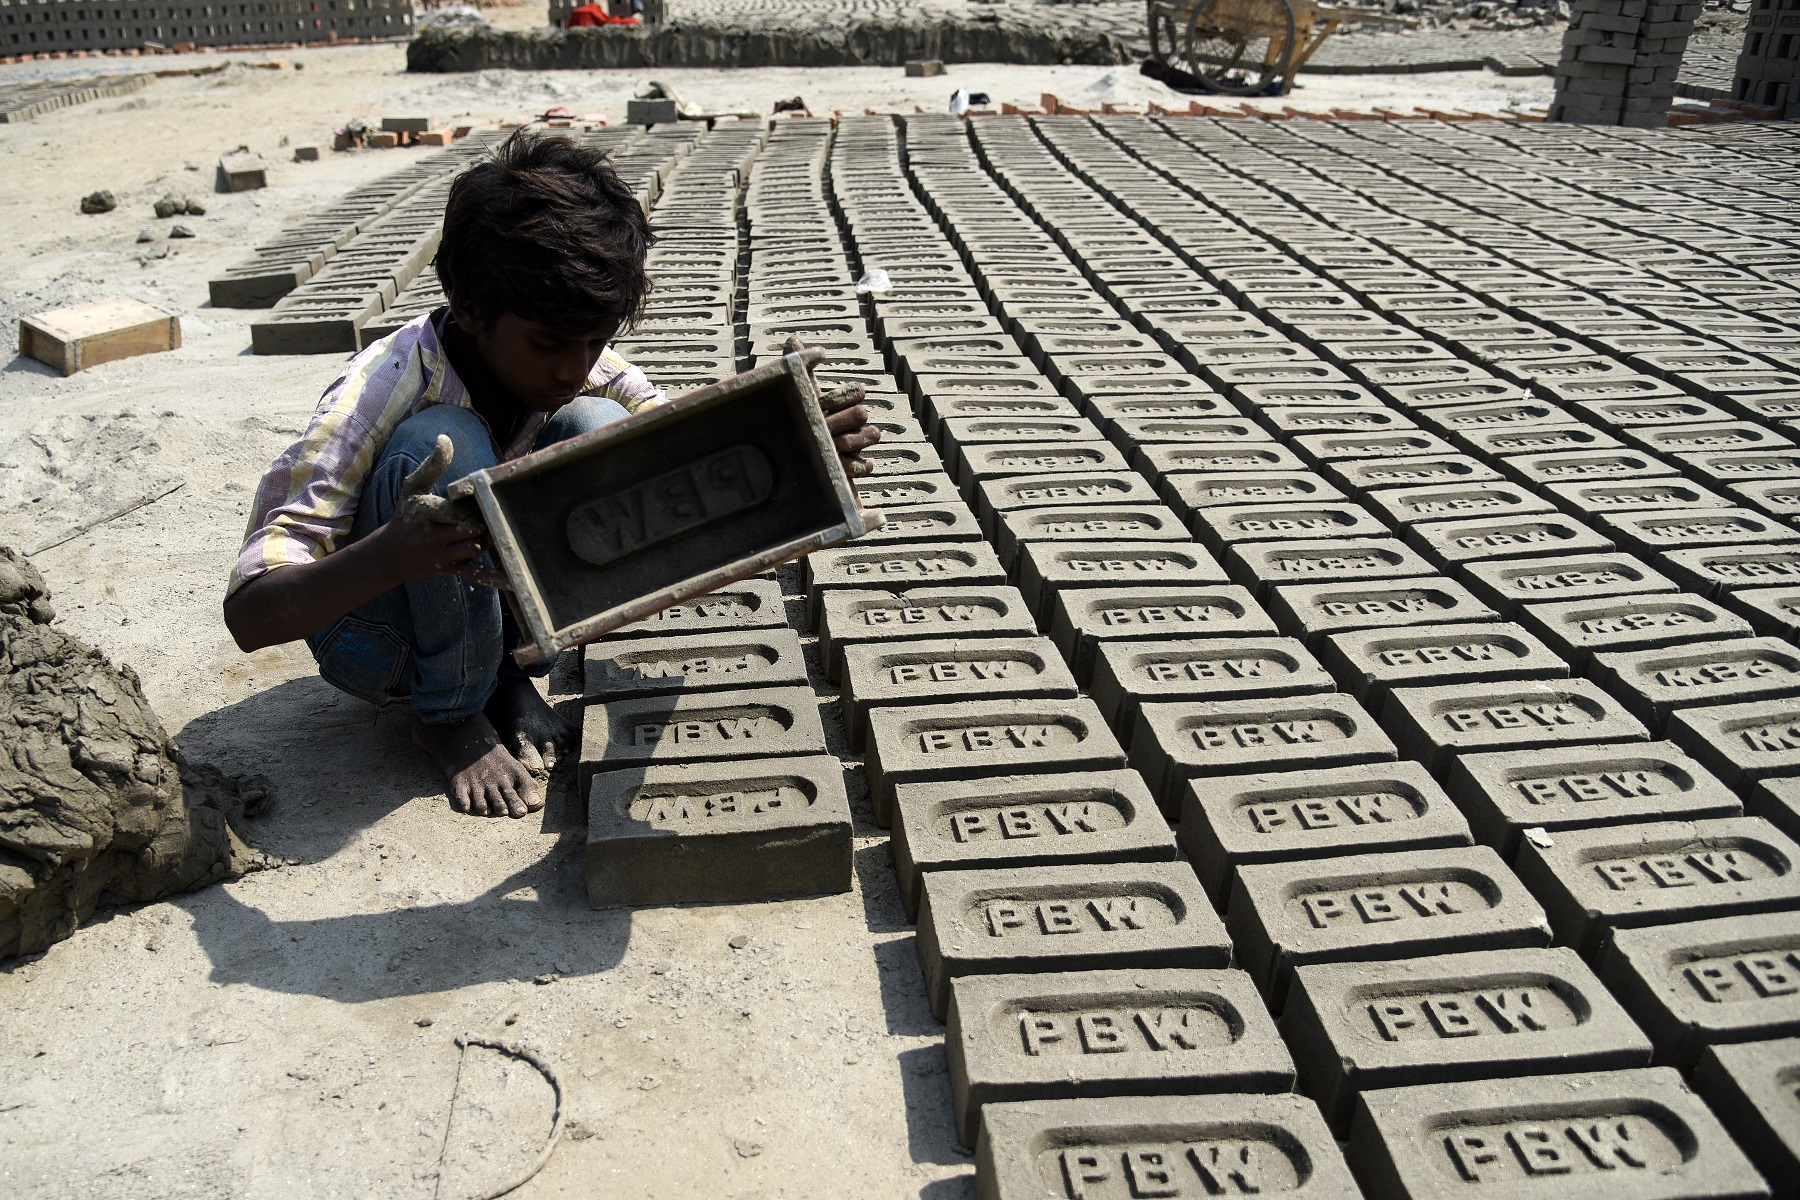 Pawan Kumar a young Indian boy moulds up to 200-300 bricks a day